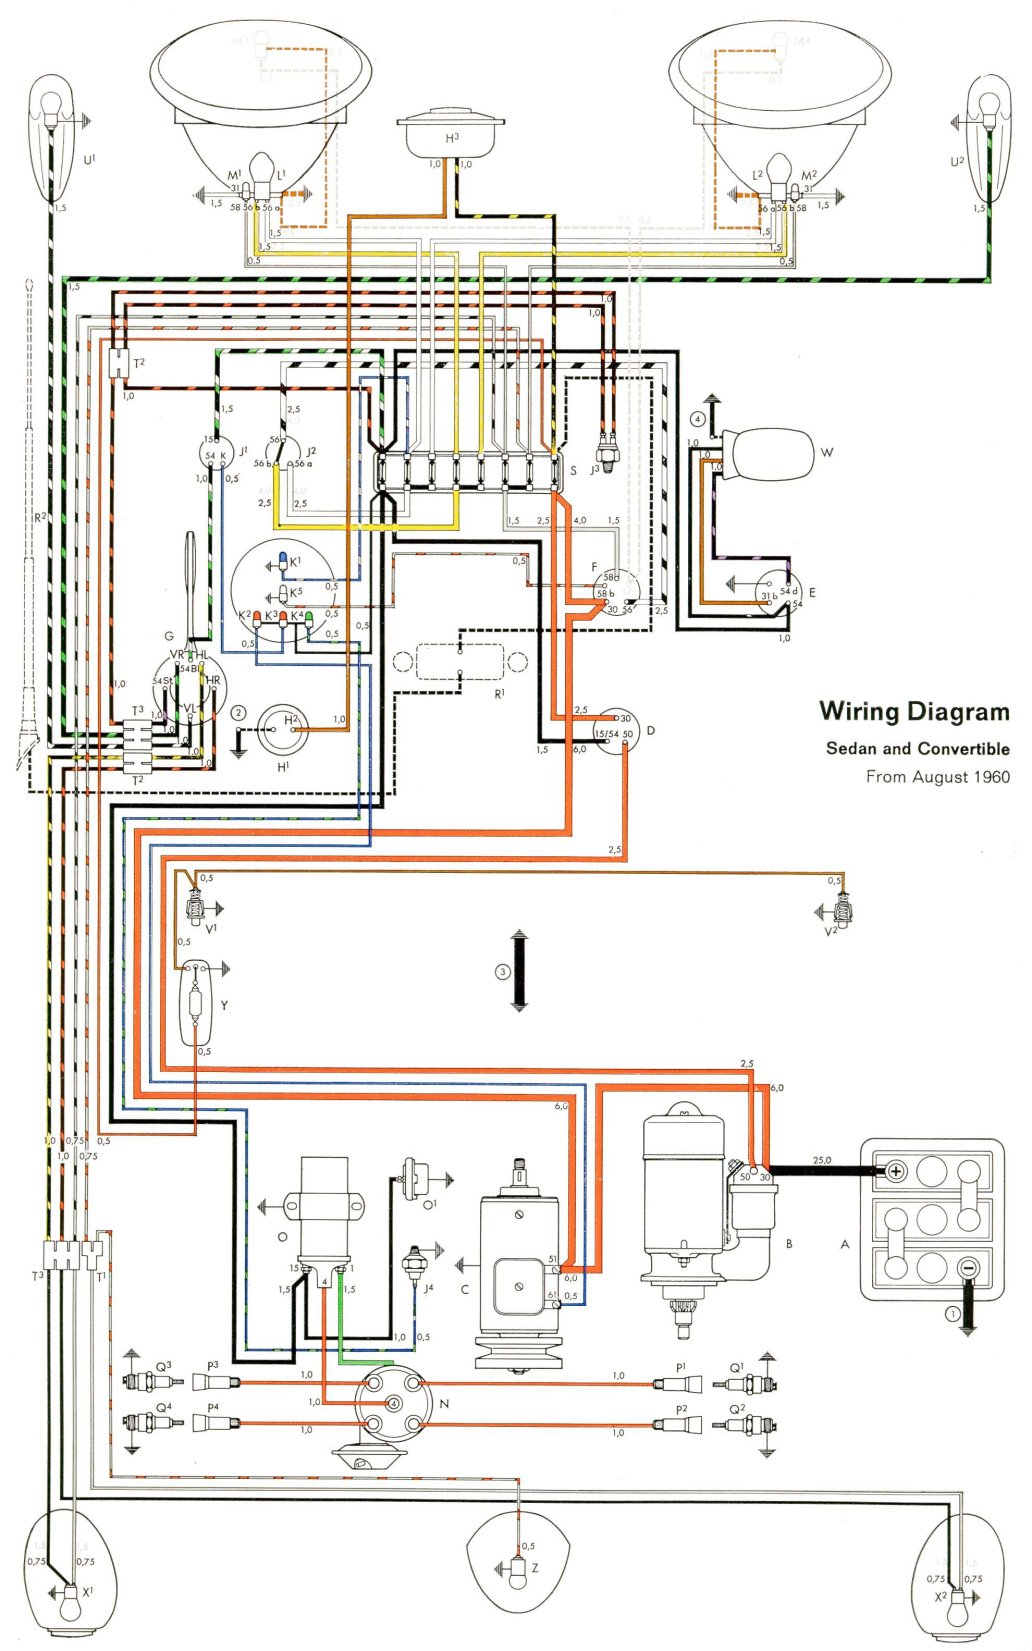 bug_61 1961 beetle wiring diagram thegoldenbug com wiring diagram 69 vw beetle at suagrazia.org